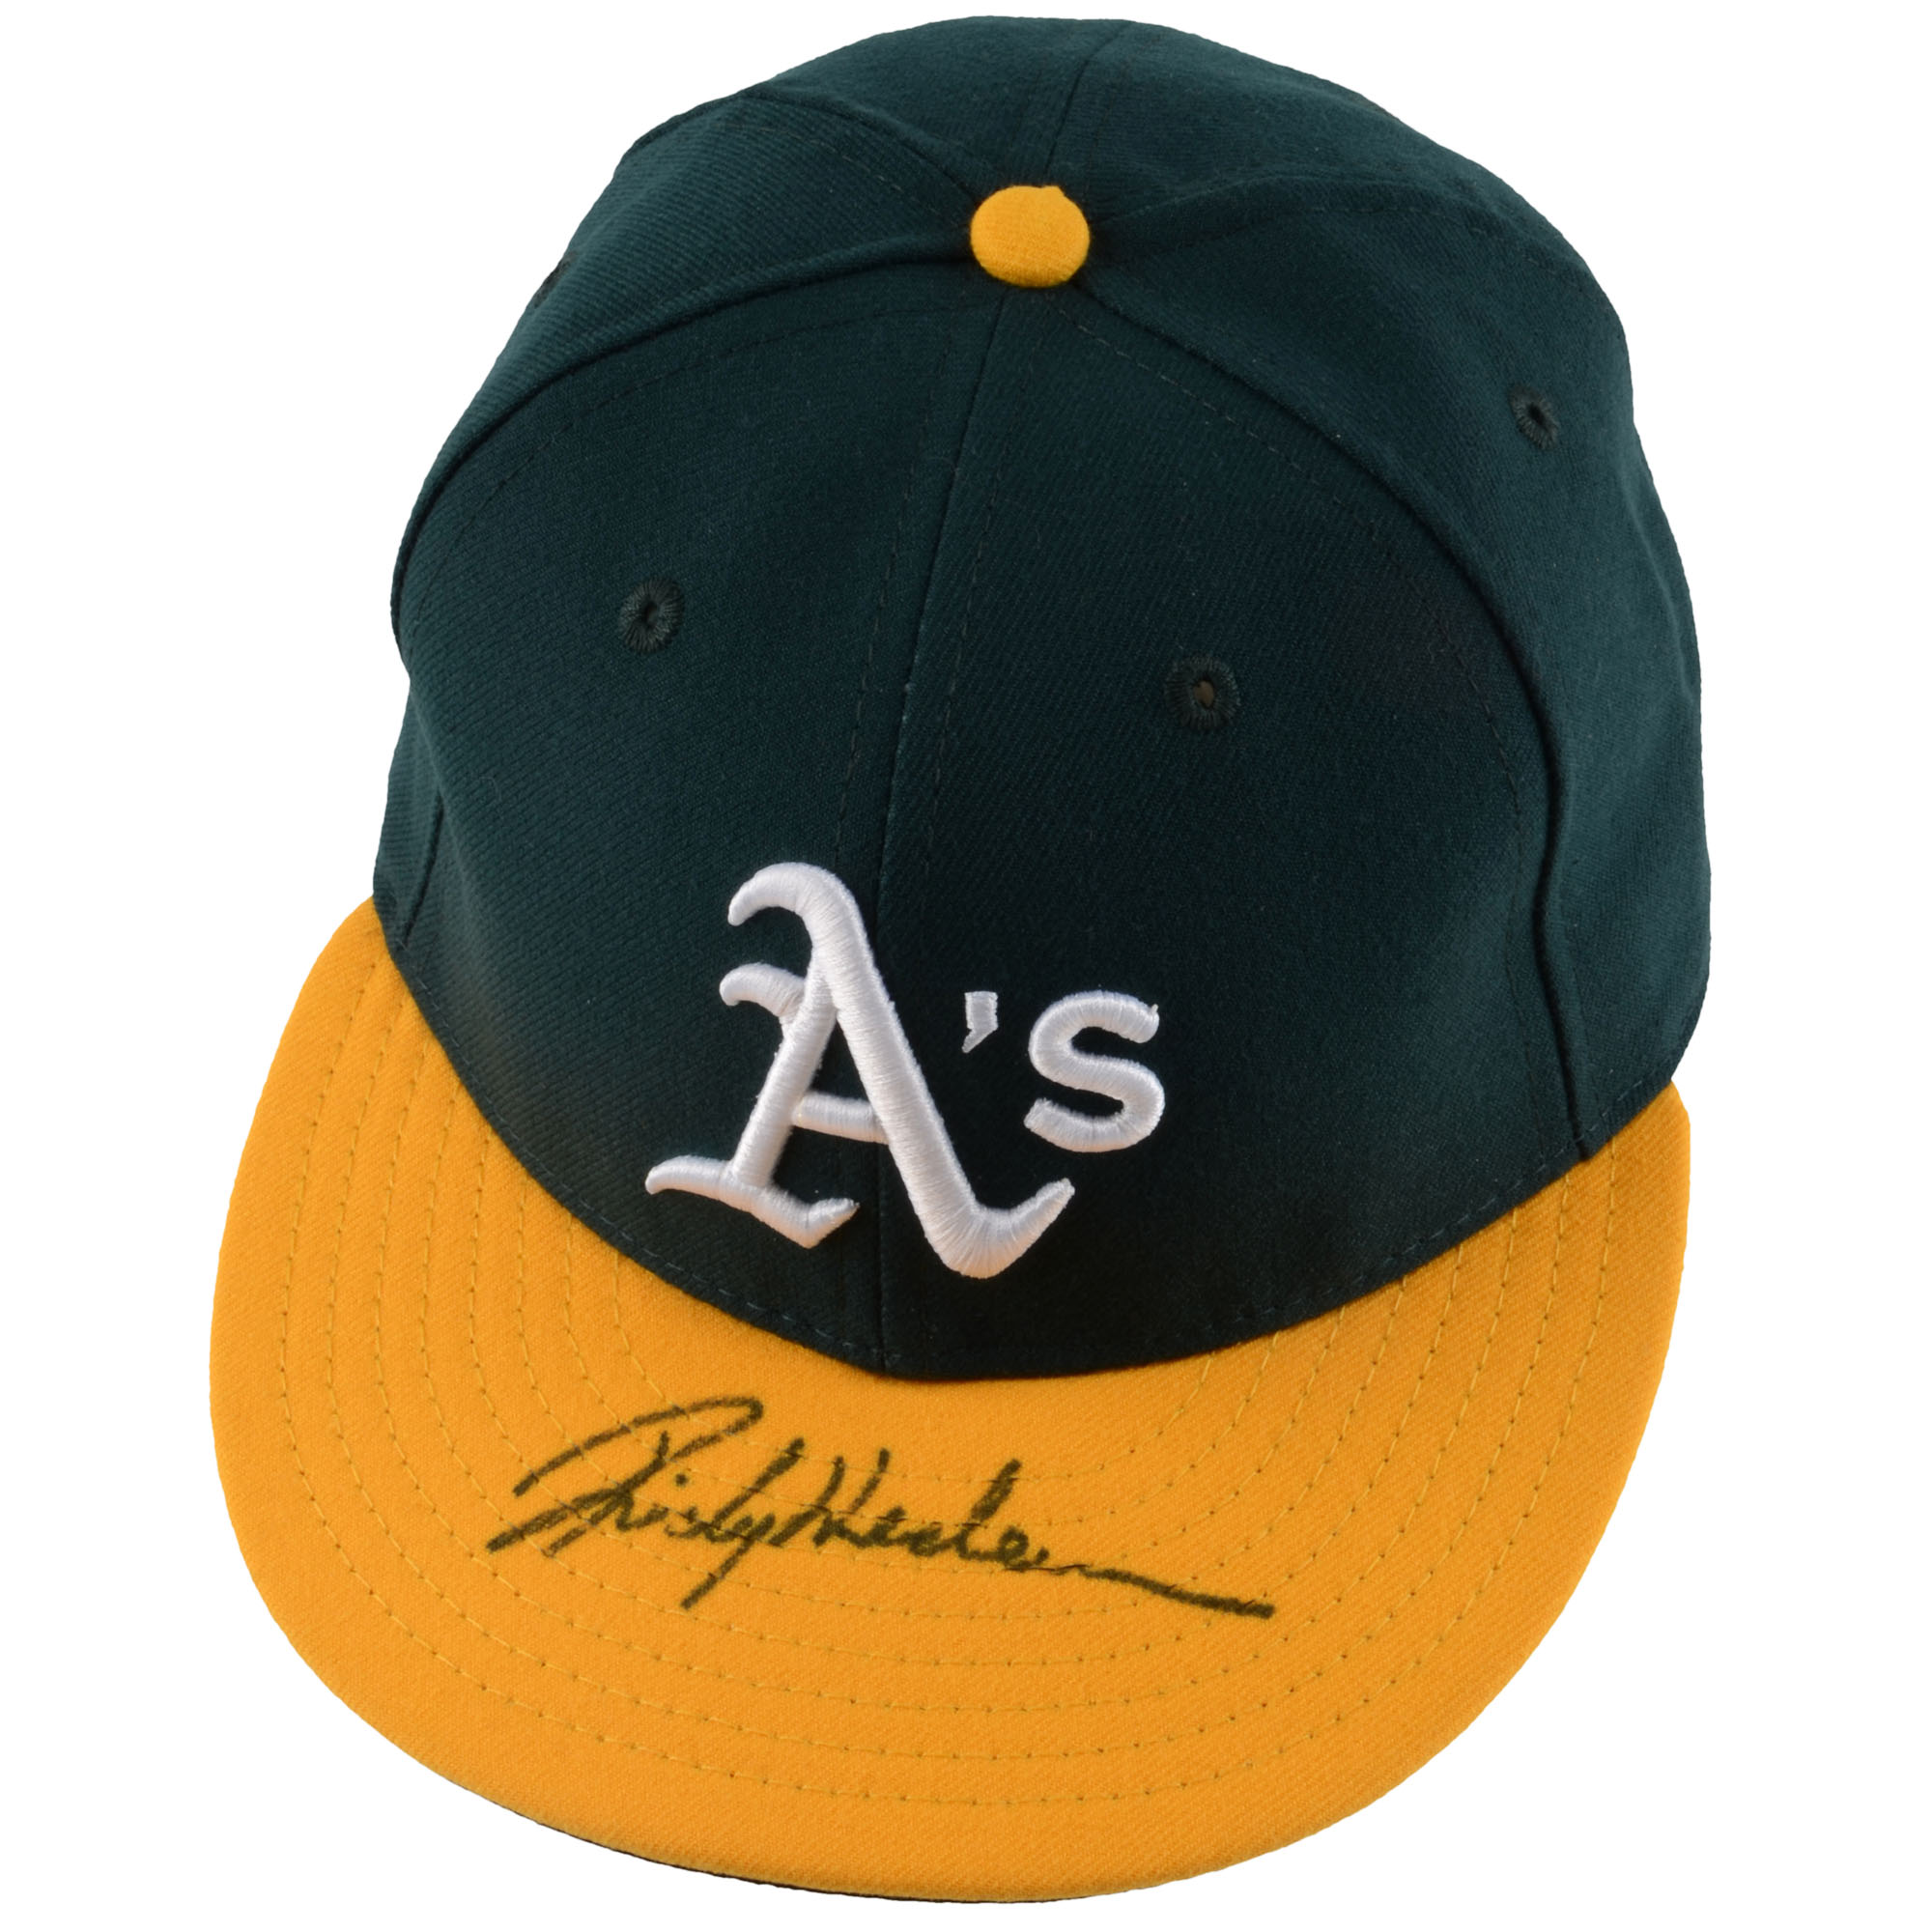 Rickey Henderson Oakland Athletics Fanatics Authentic Autographed New Era Cap - No Size